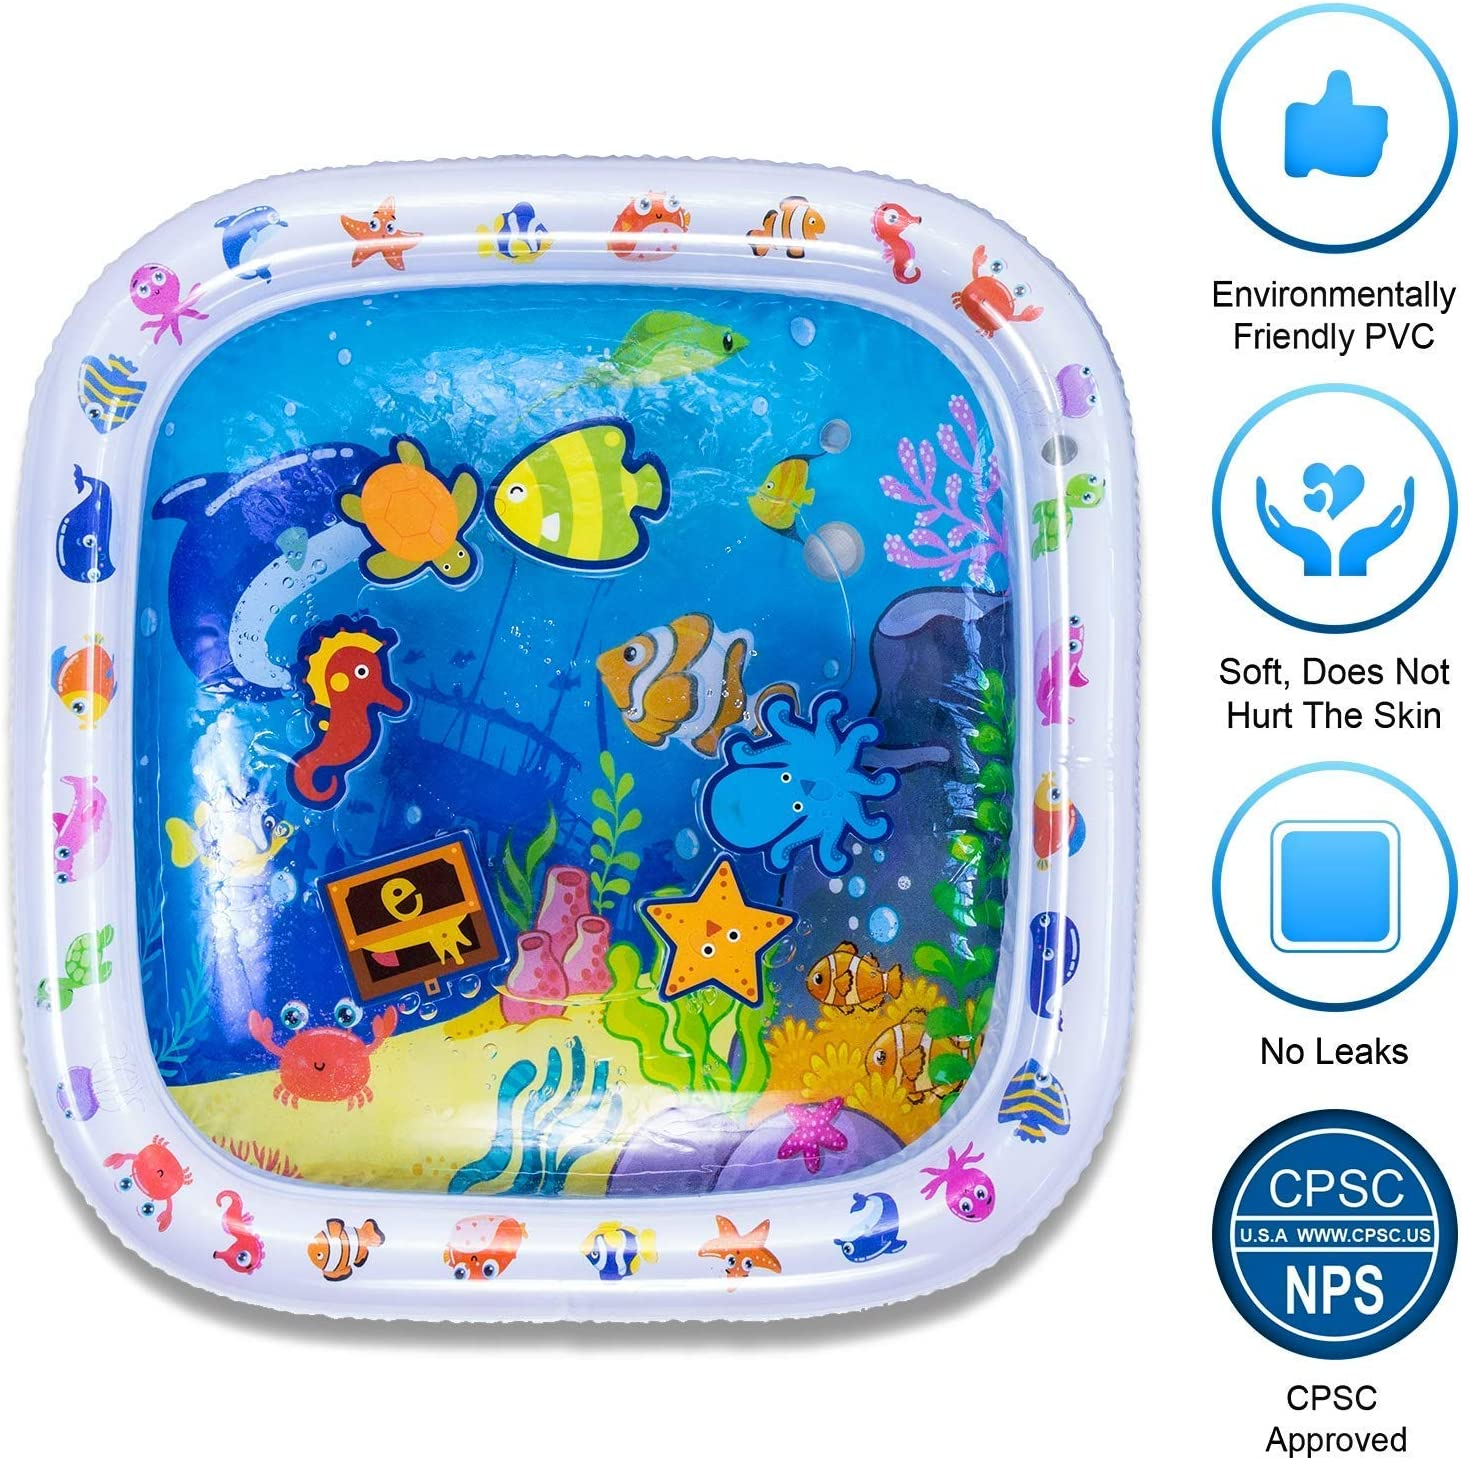 2020 Upgrade Design Infant Toys Inflatable Play Mat for 3-12 Months Newborn Baby Boys Girls Tummy Time Baby Water Mat Fun Activity Play Center for Babys Growth Brain Development